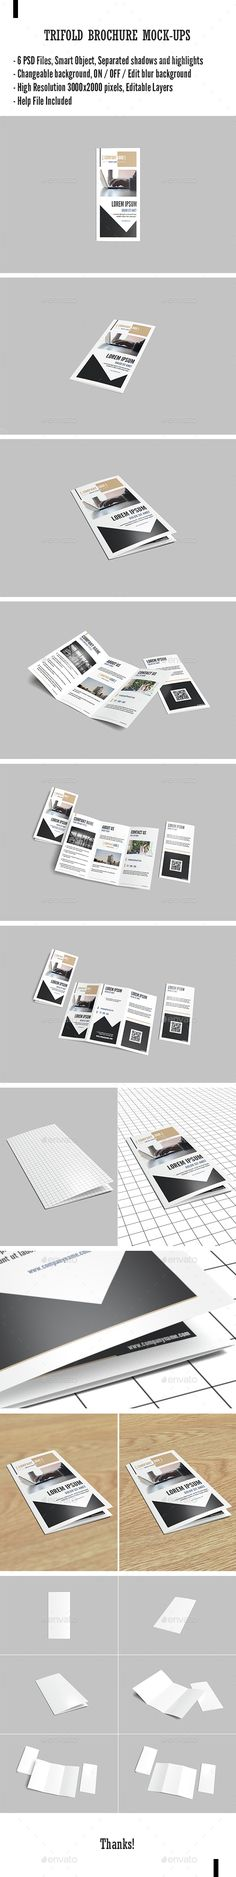 This item consist of 6 different styles brochure mockup to showcase your design in realistic appearaces. These mock-up files uses